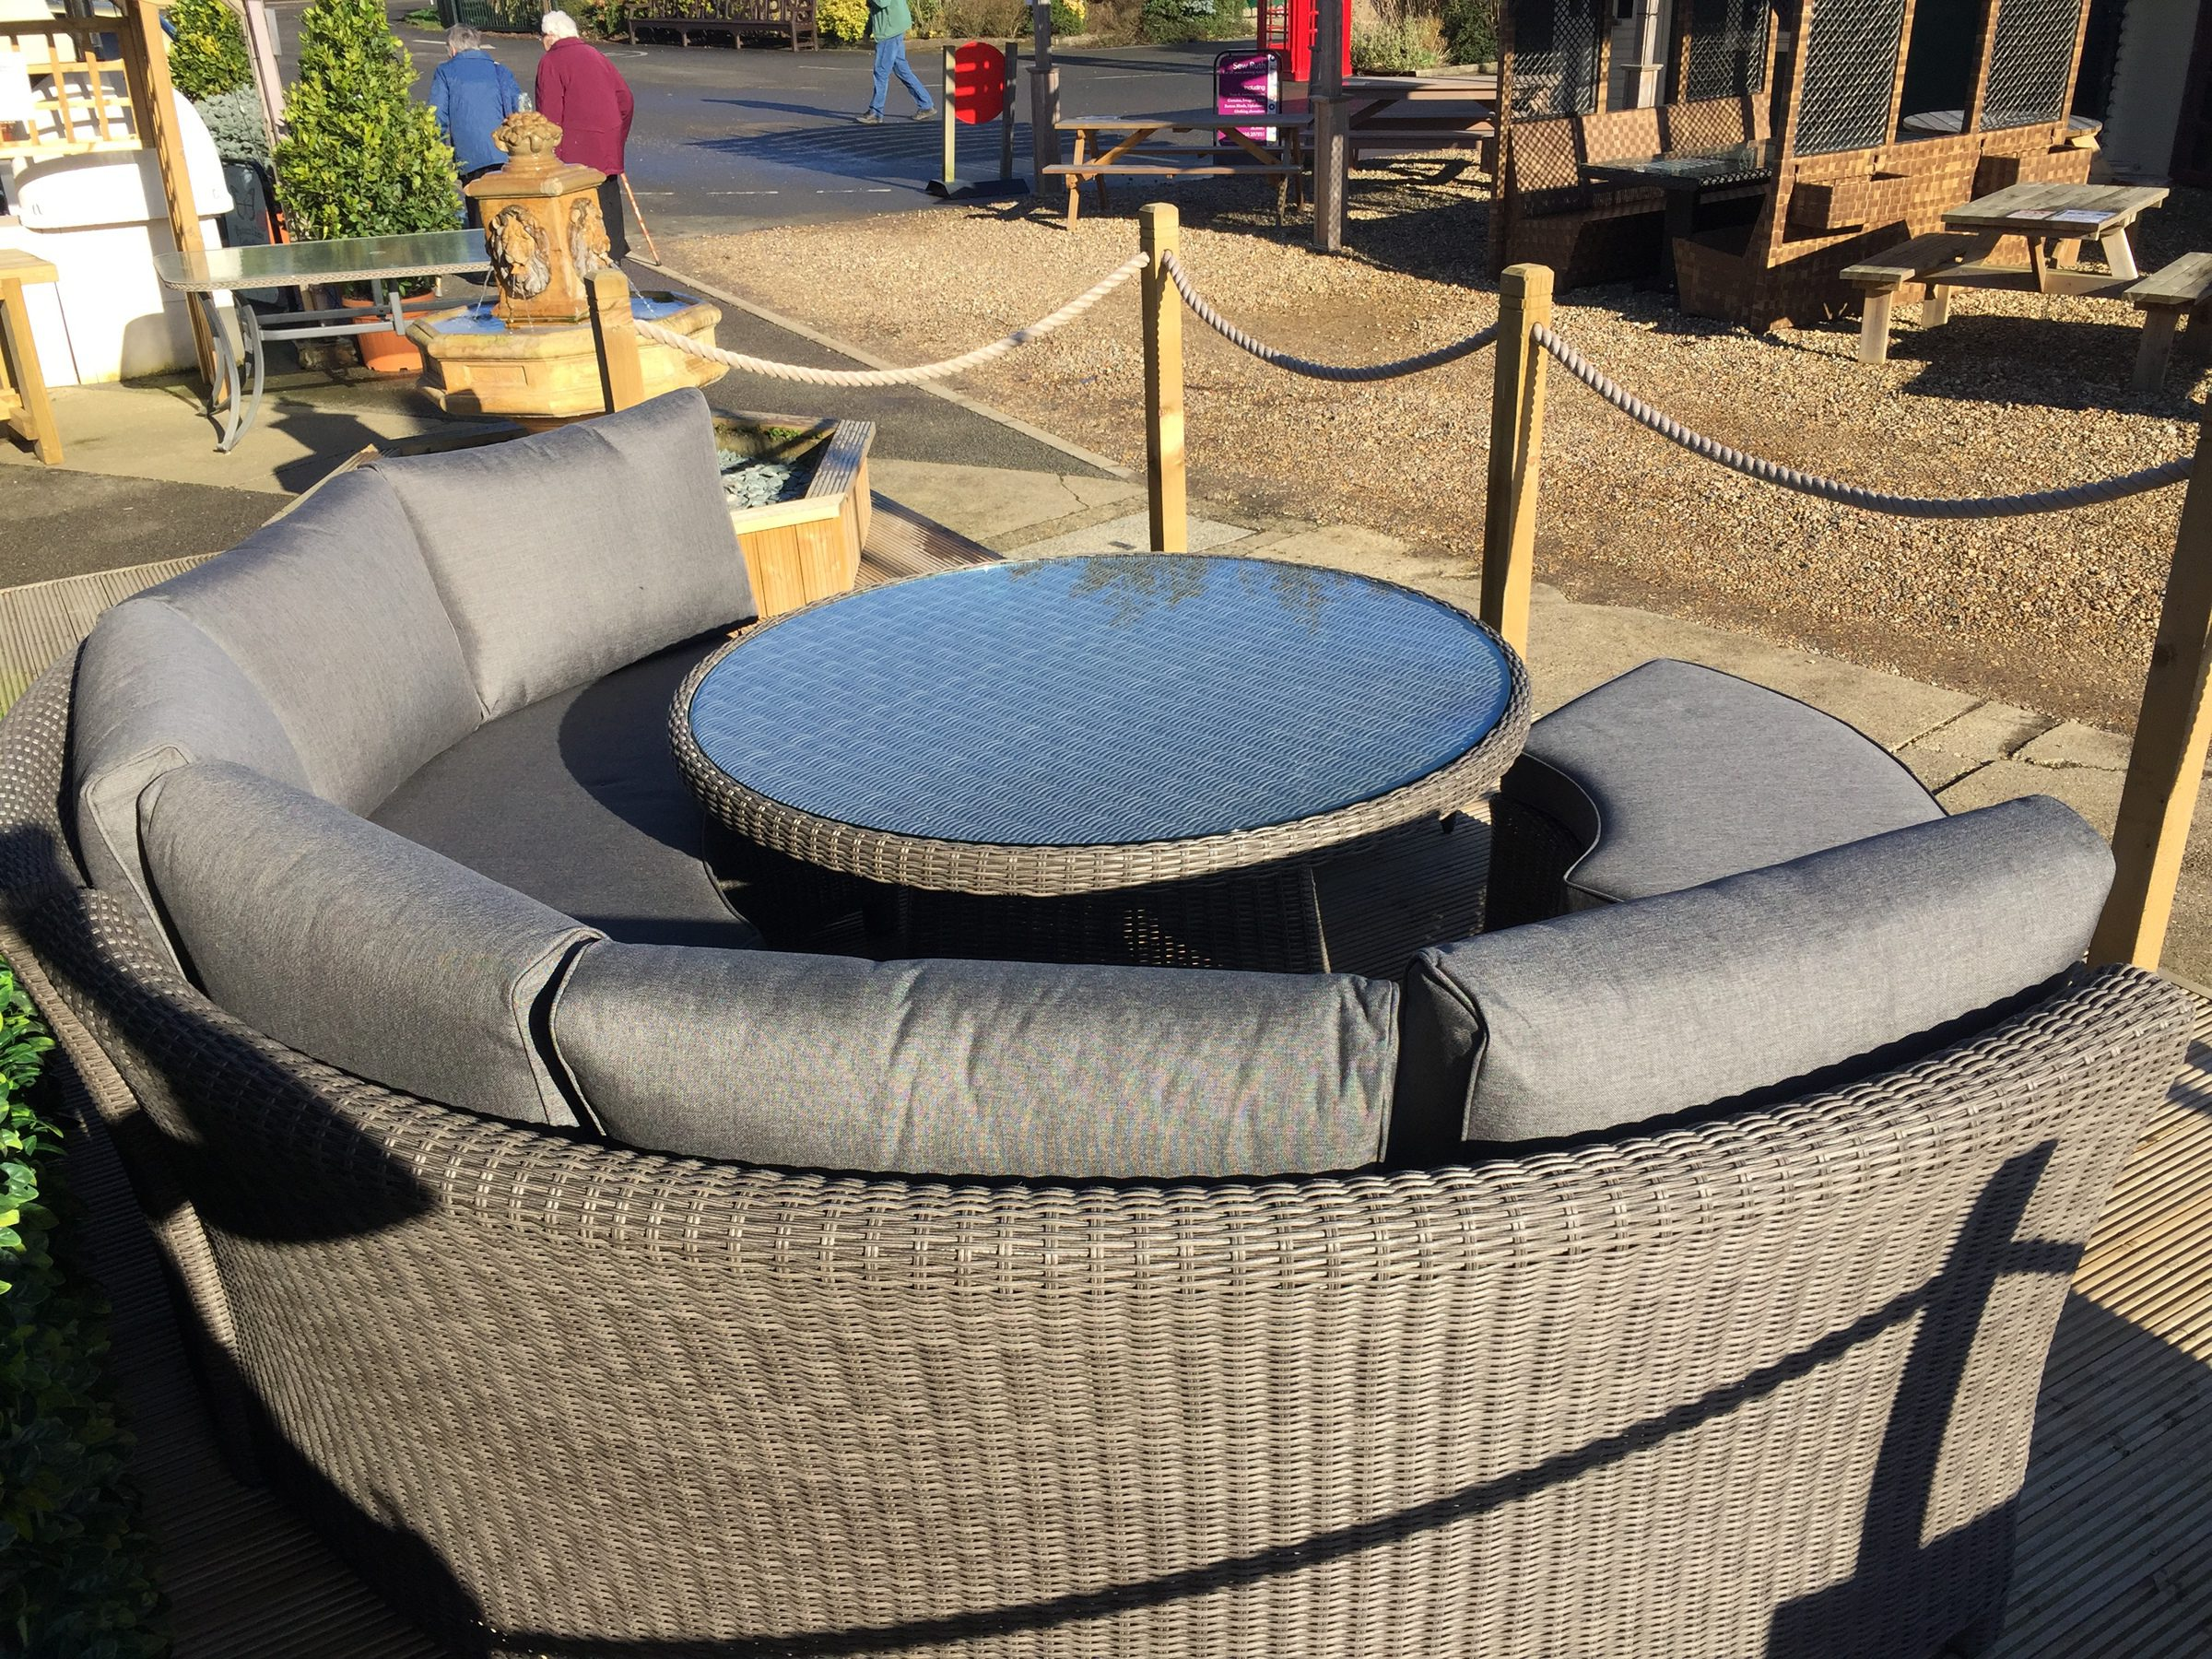 Kettler Palma Round Set In Rattan New For 2018 2